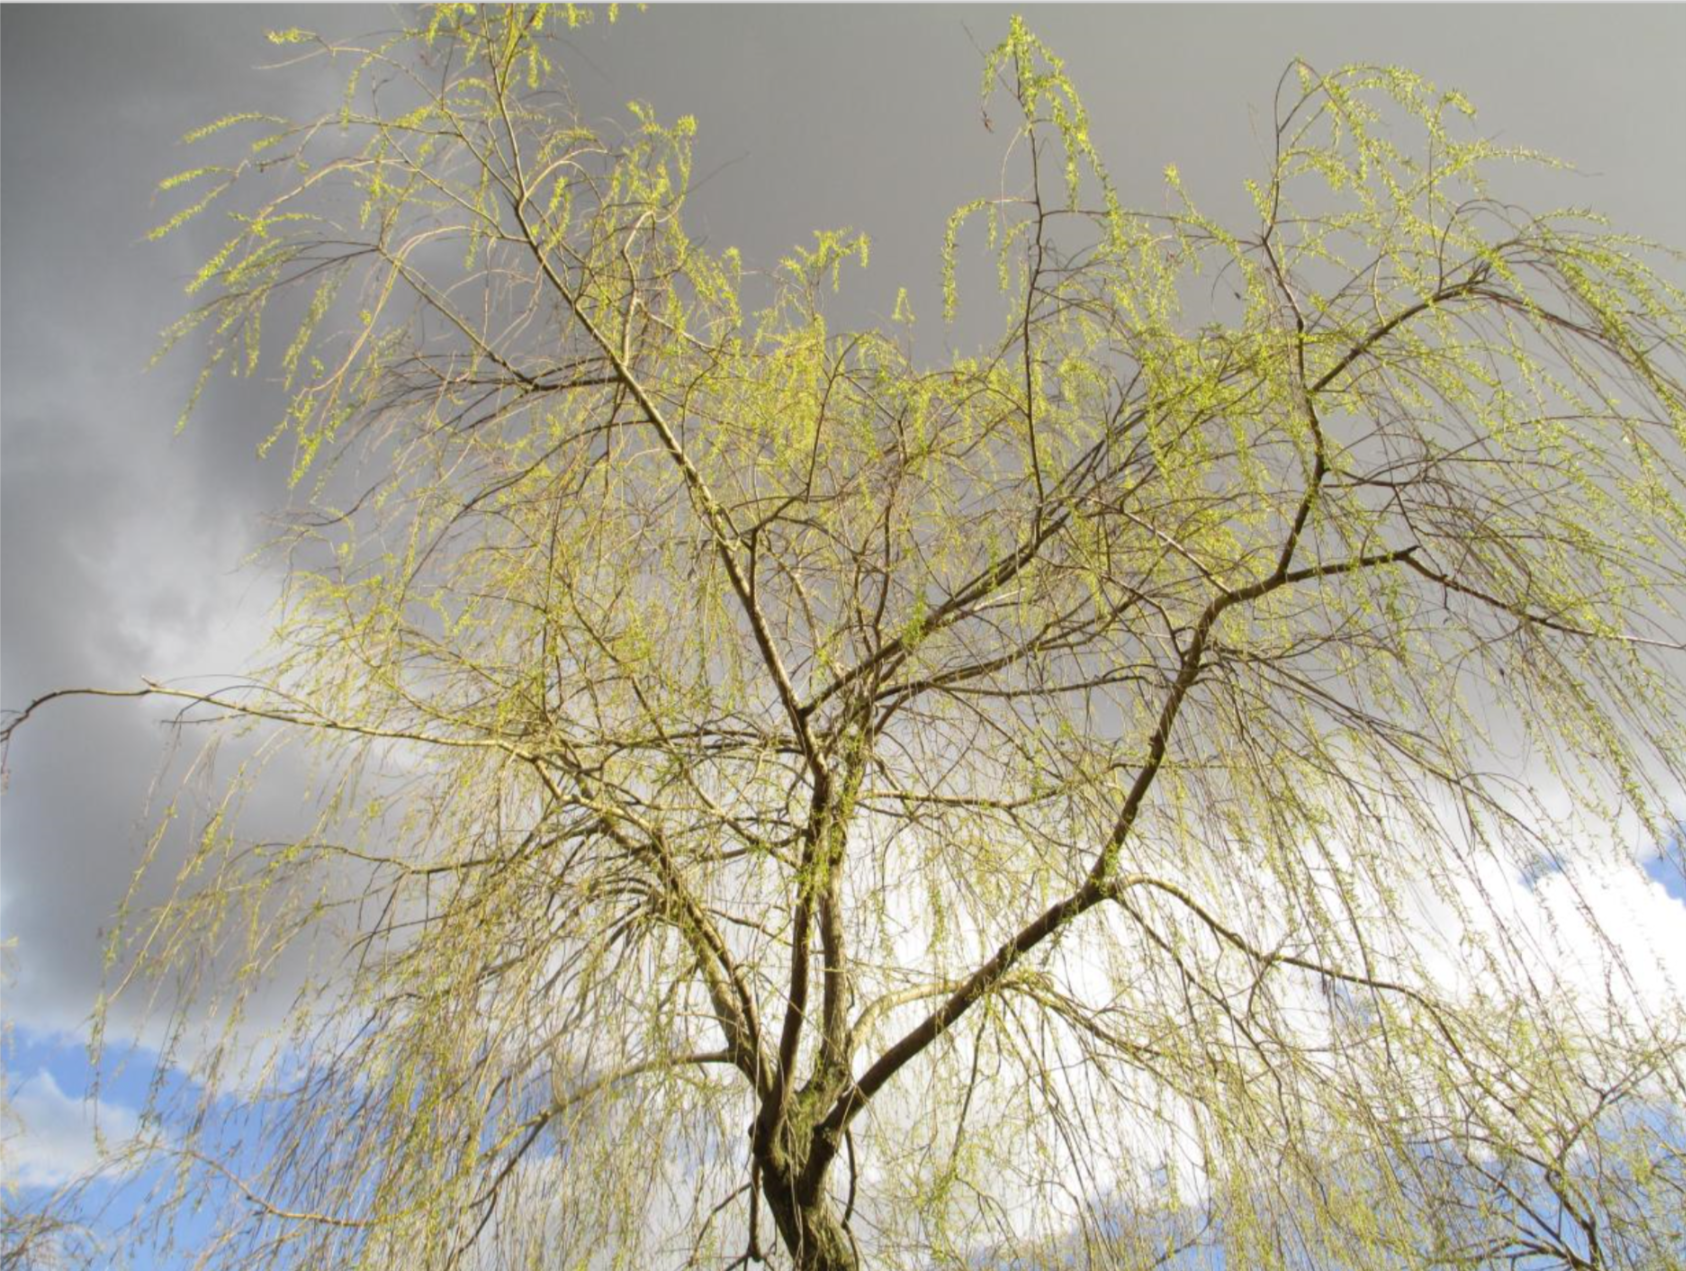 A willow in Stockholm in April 2016 Jacob Truedson Demitz for Ristesson Ent.